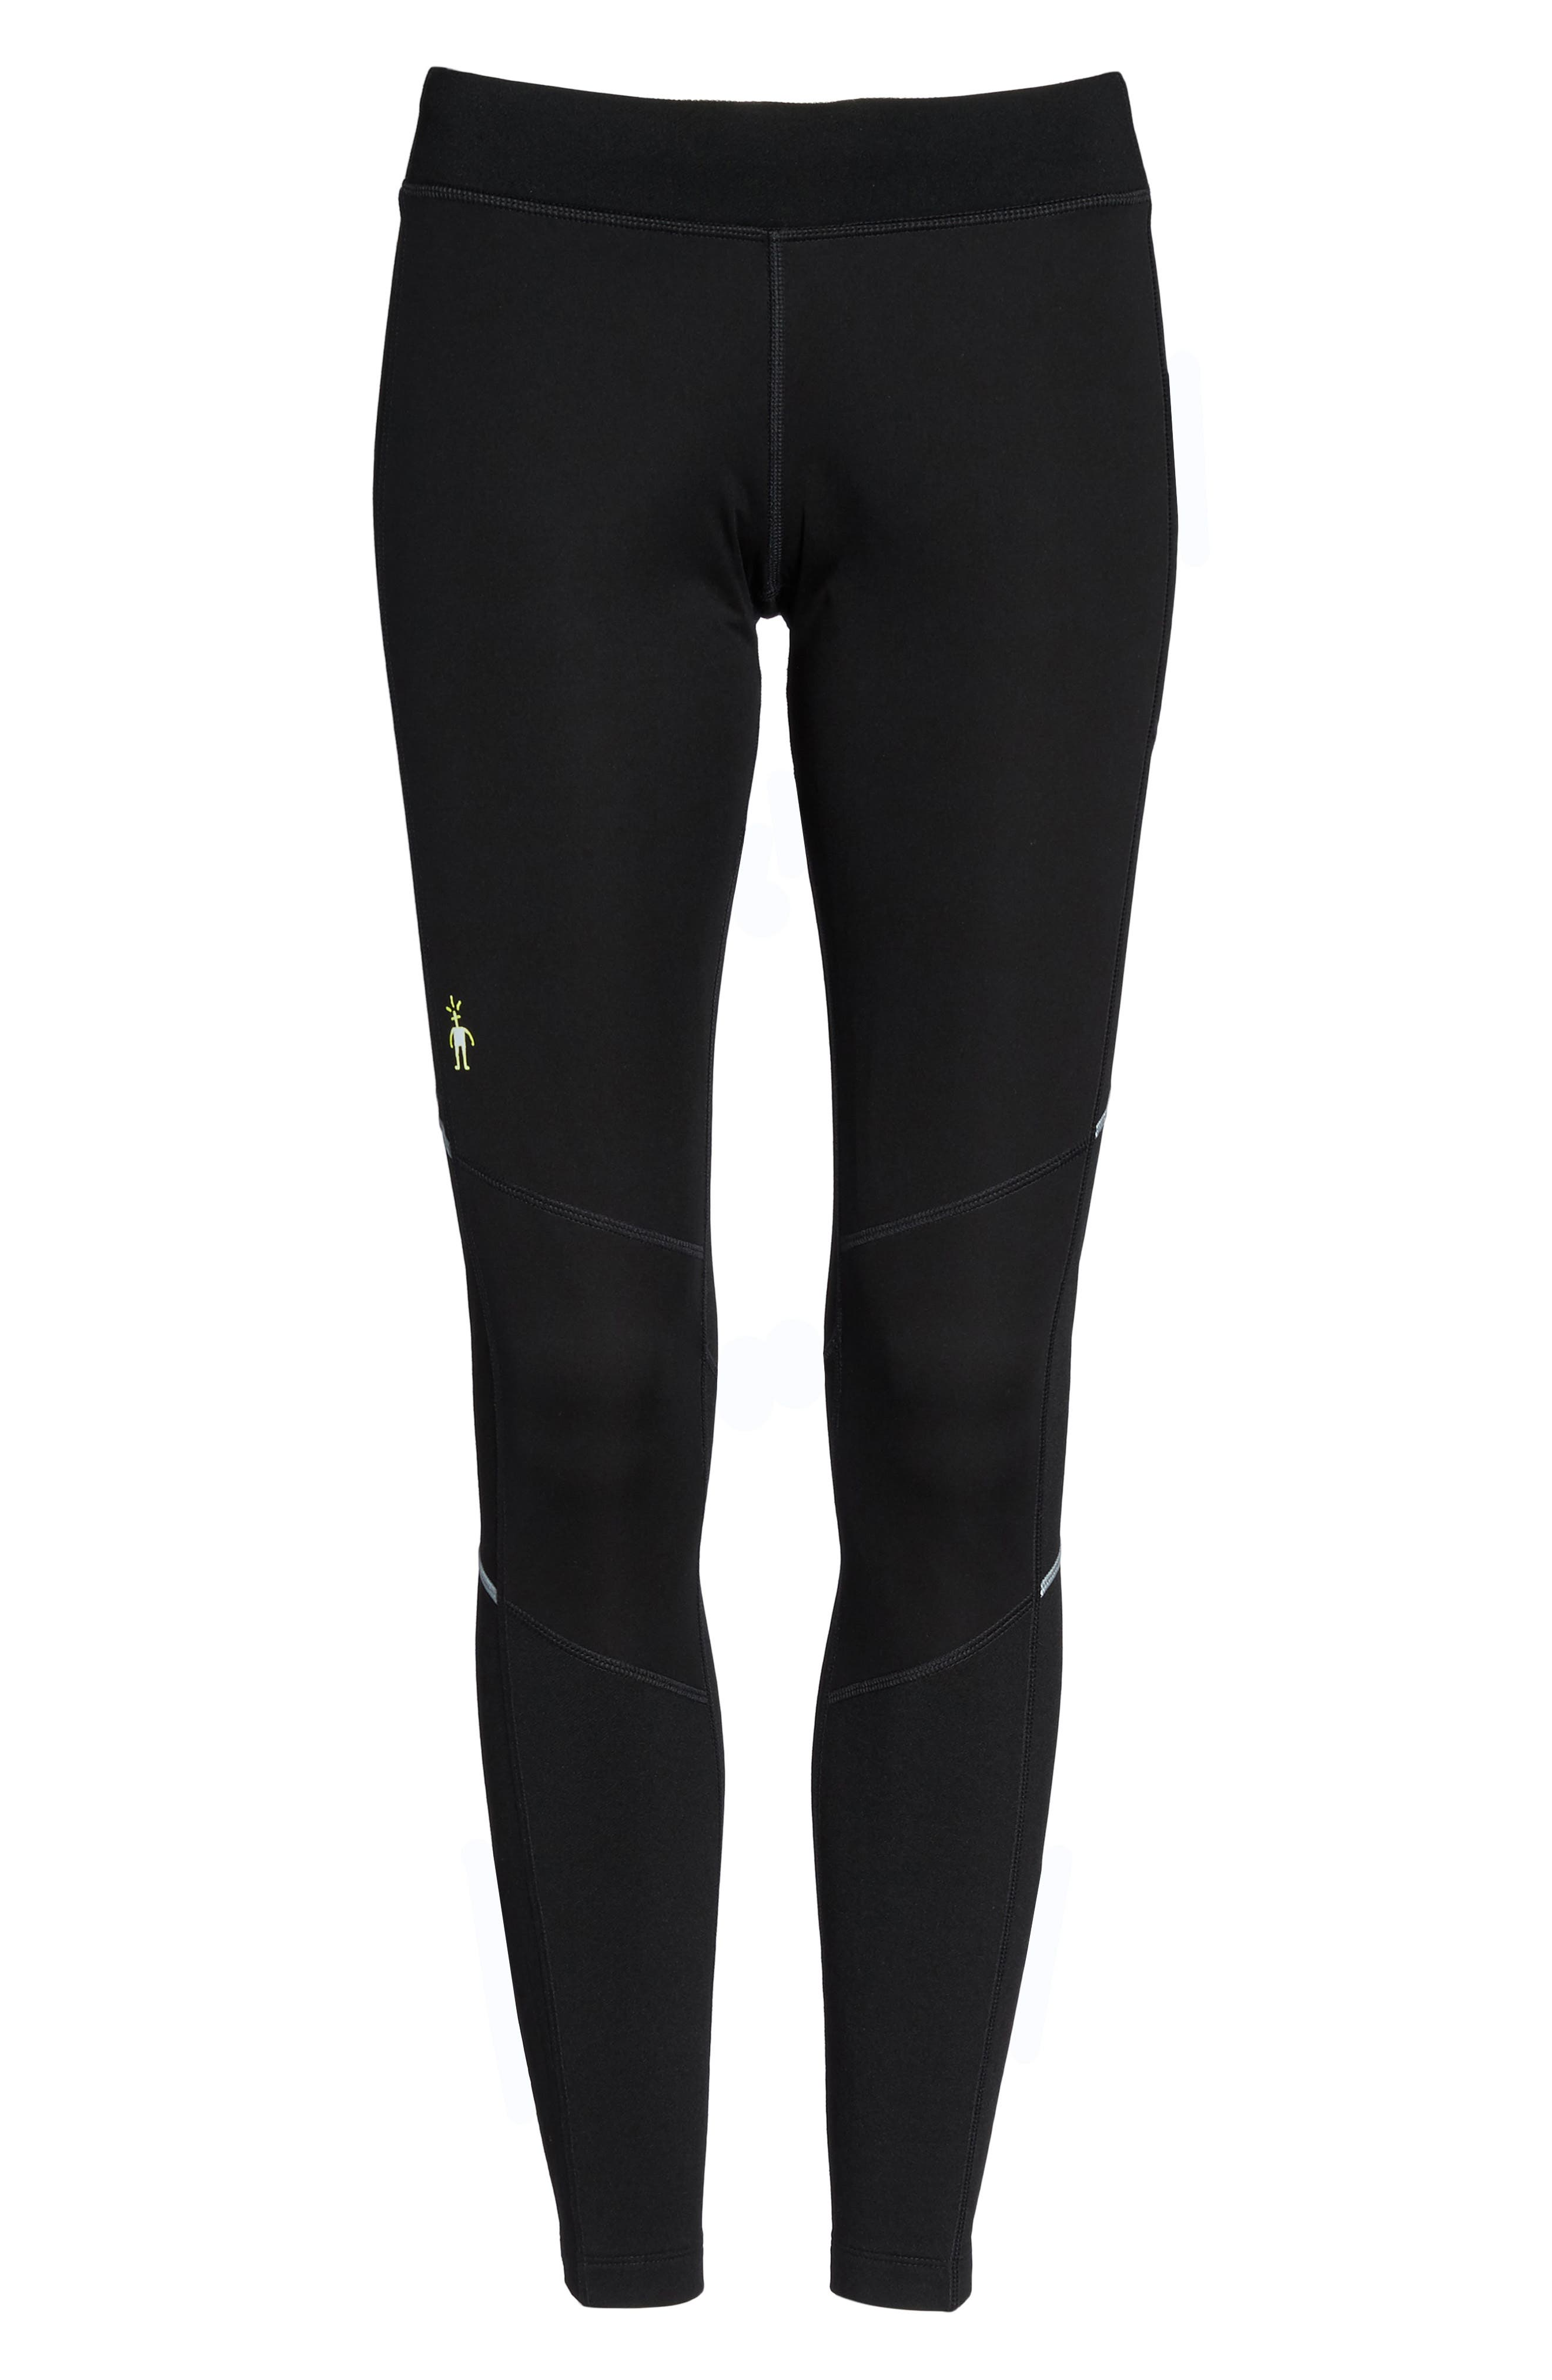 PhD Wind Tights,                             Alternate thumbnail 7, color,